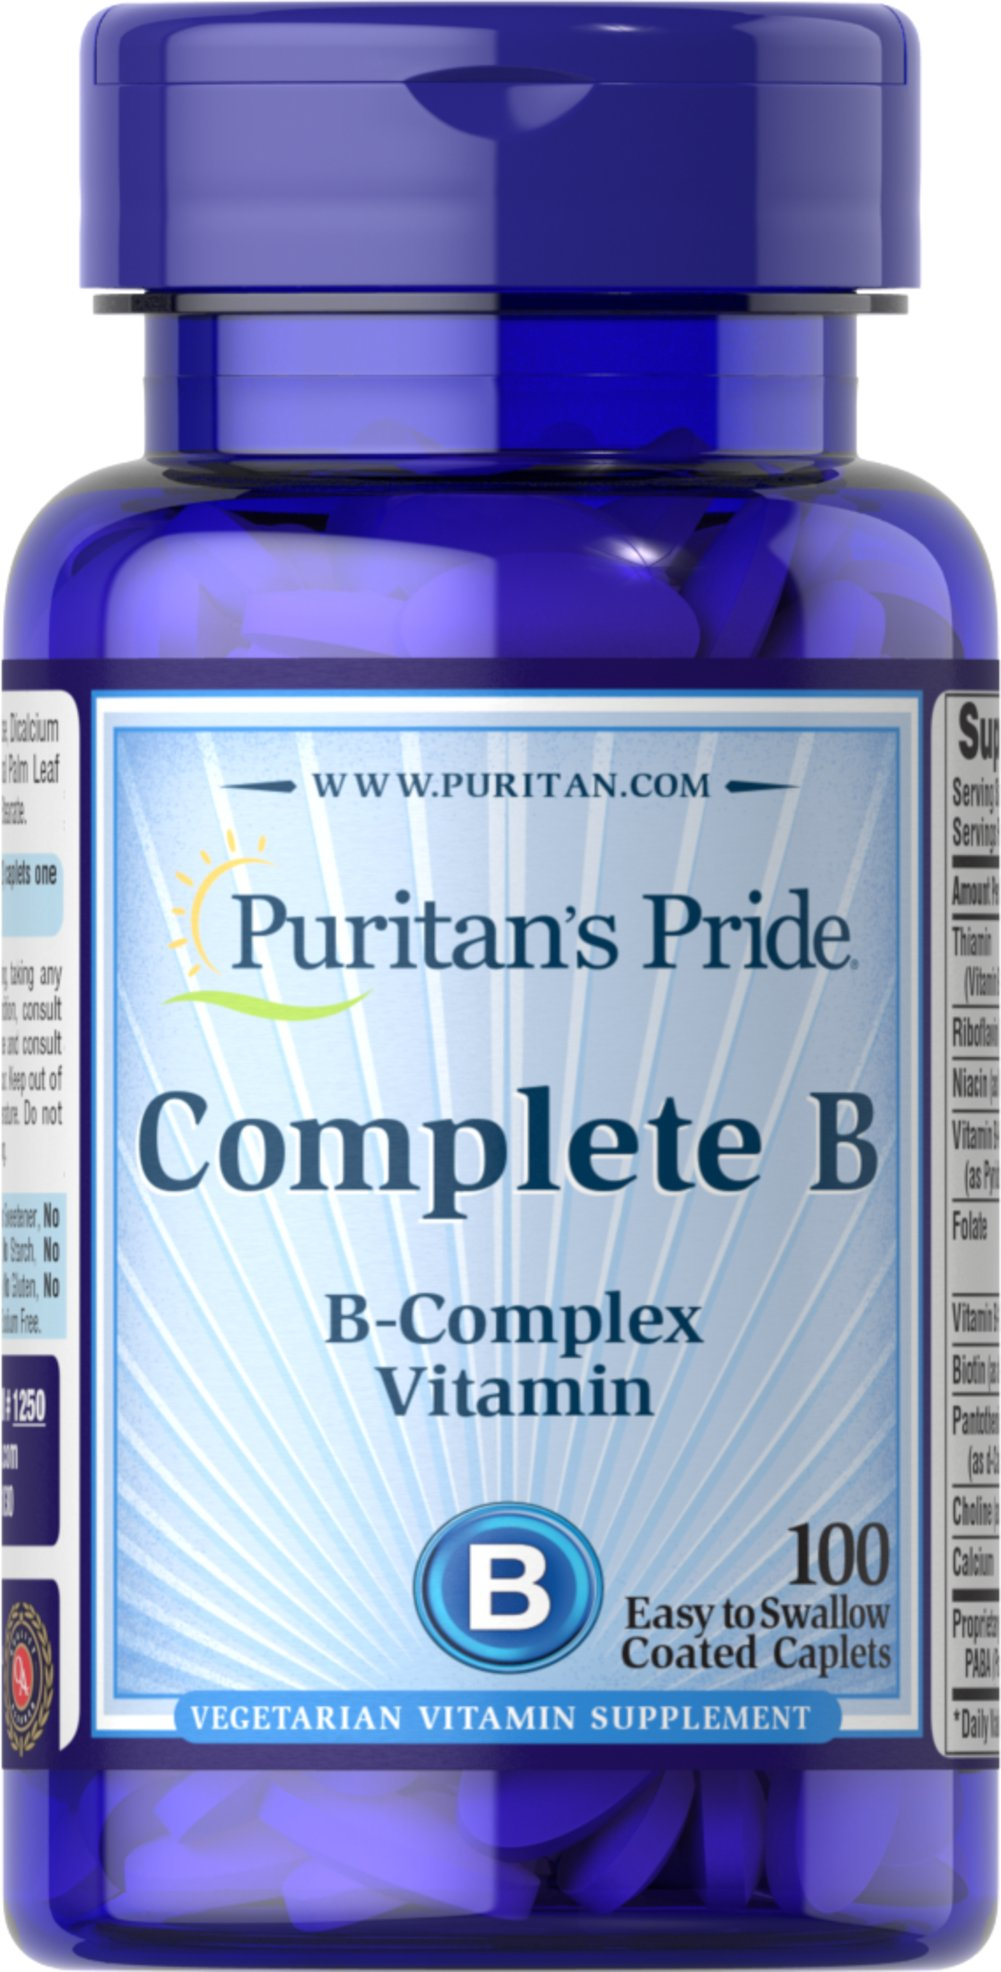 Complete B (Vitamin B Complex) <p>Complete Vitamin B Complex provides seven important B vitamins in just two caplets without sugar, starch, artificial colors or flavors. You get the entire B family in this sodium-free tablet the best B vitamin nutrition you can buy! Complete B can give you the peace of mind you deserve.</p> 100 Caplets  $2.24